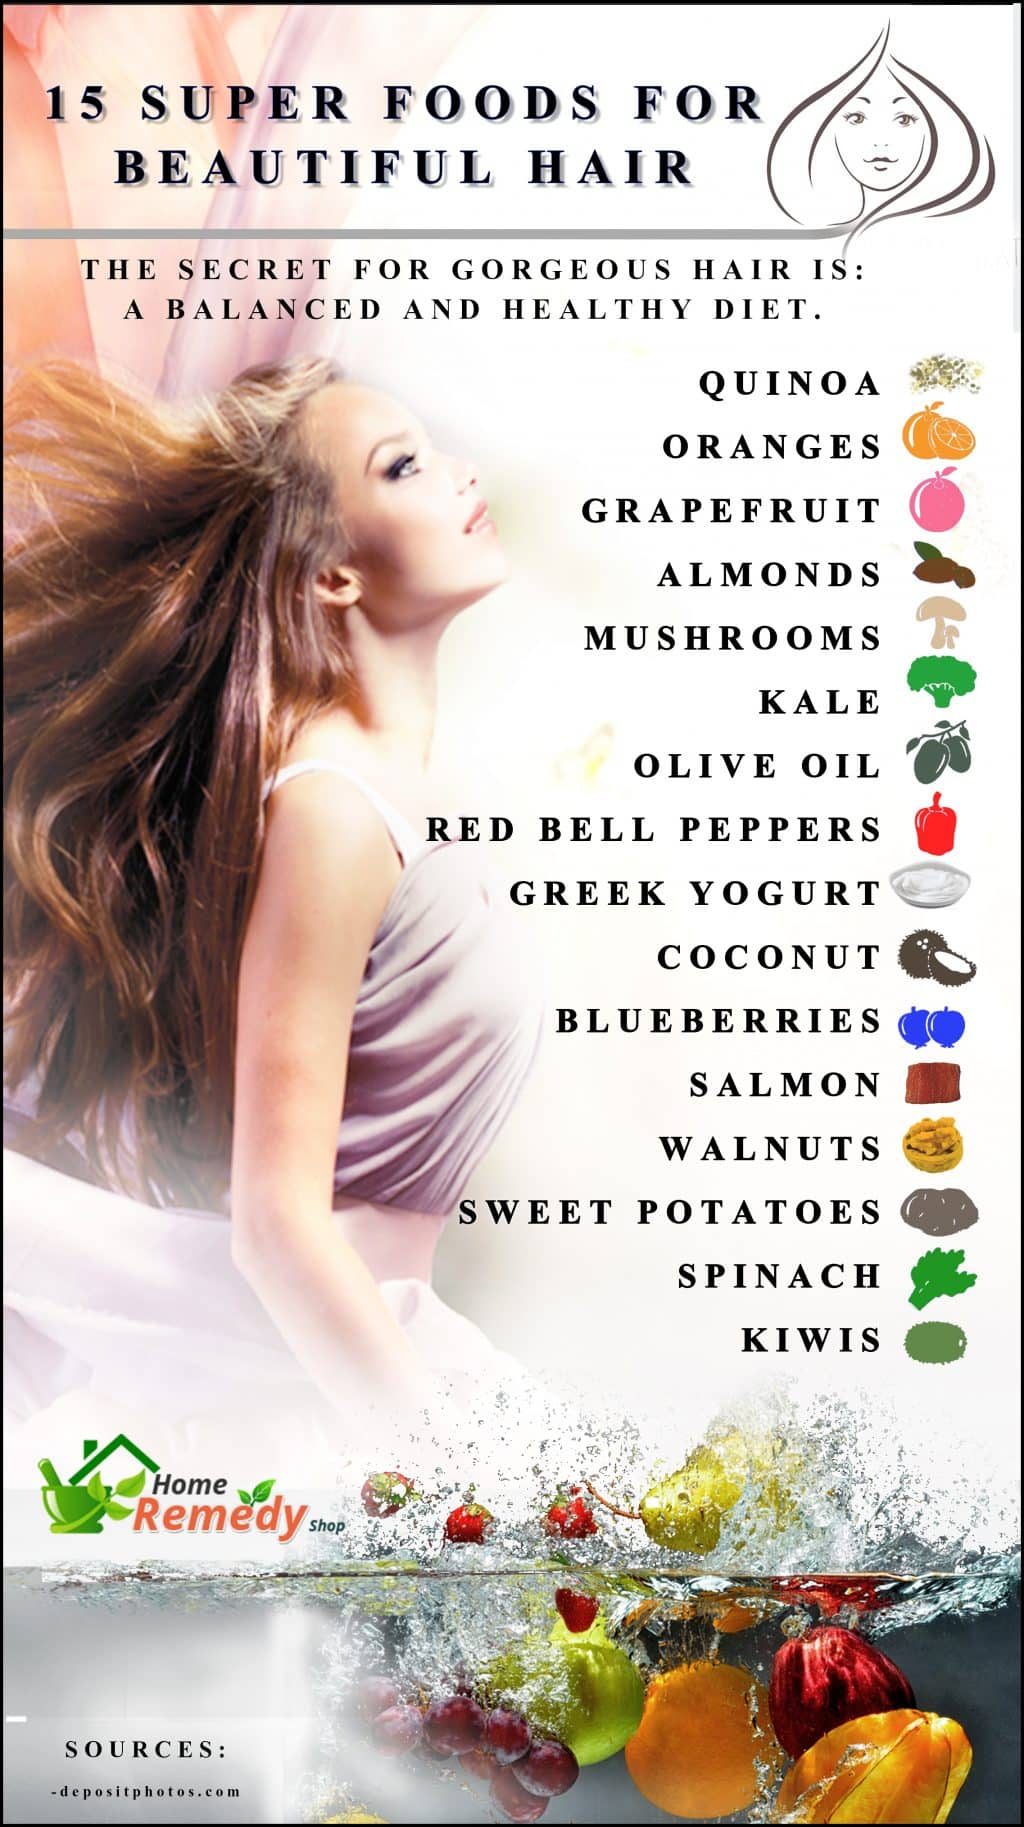 15 Super Foods For Beautiful Hair